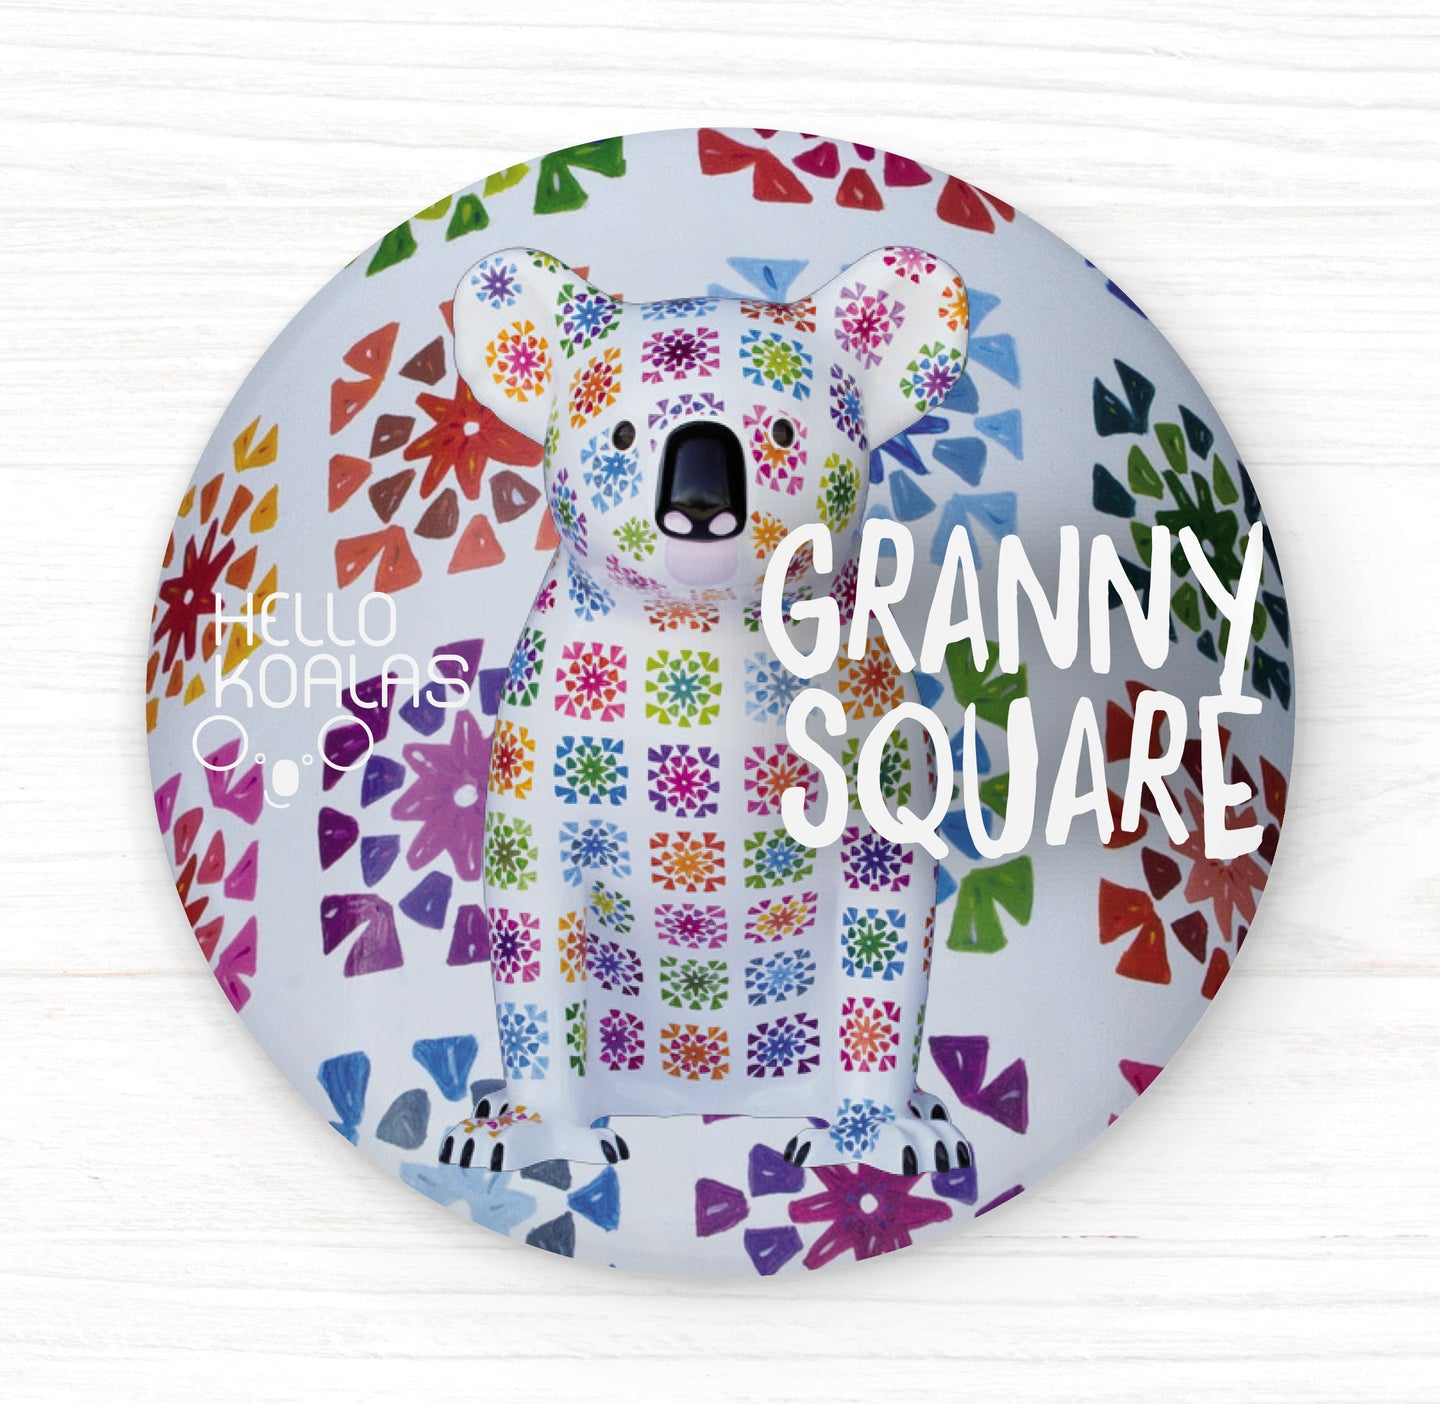 Hello Koalas Granny Square Badge